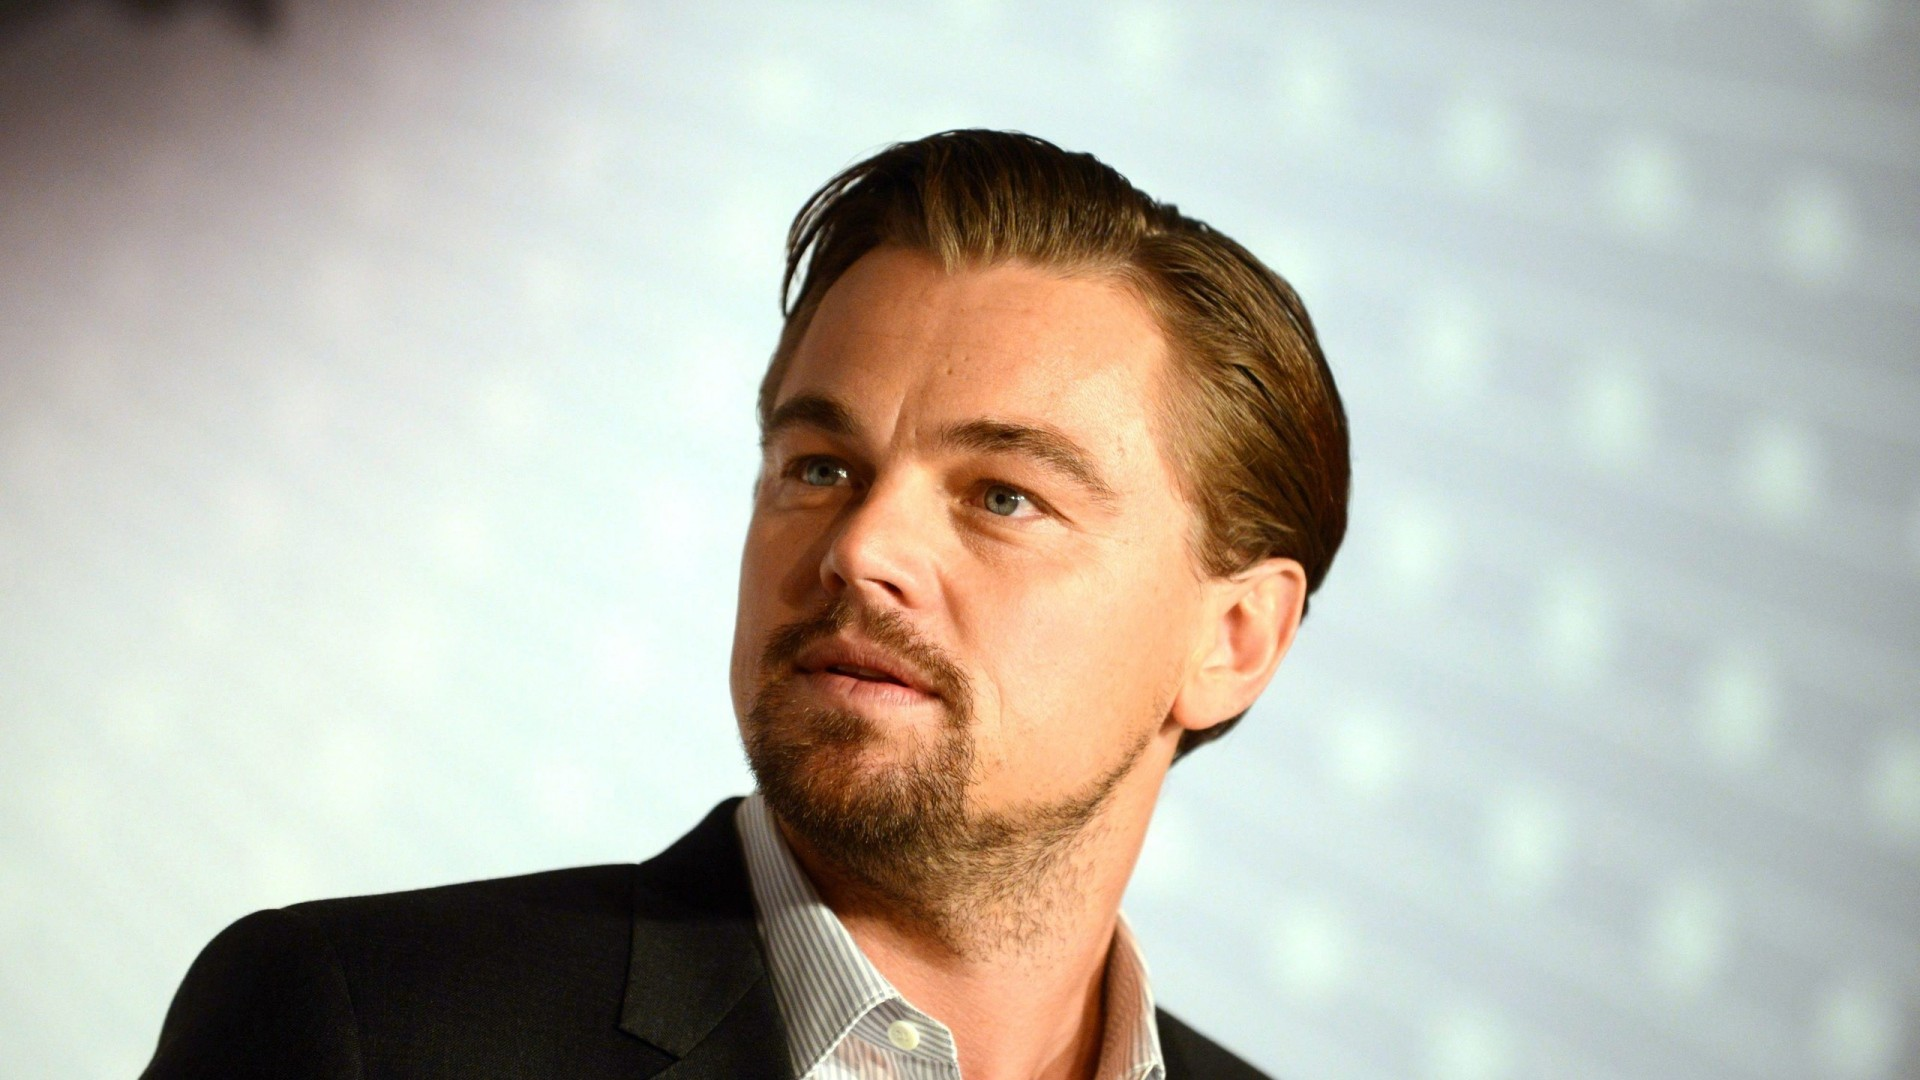 1920x1080 Leonardo Dicaprio wallpaper for mobile #981